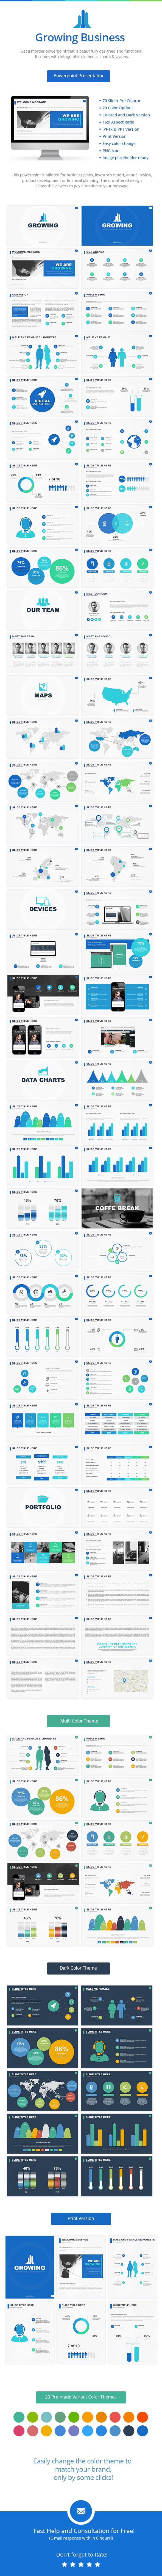 Growing Powerpoint Presentation Template